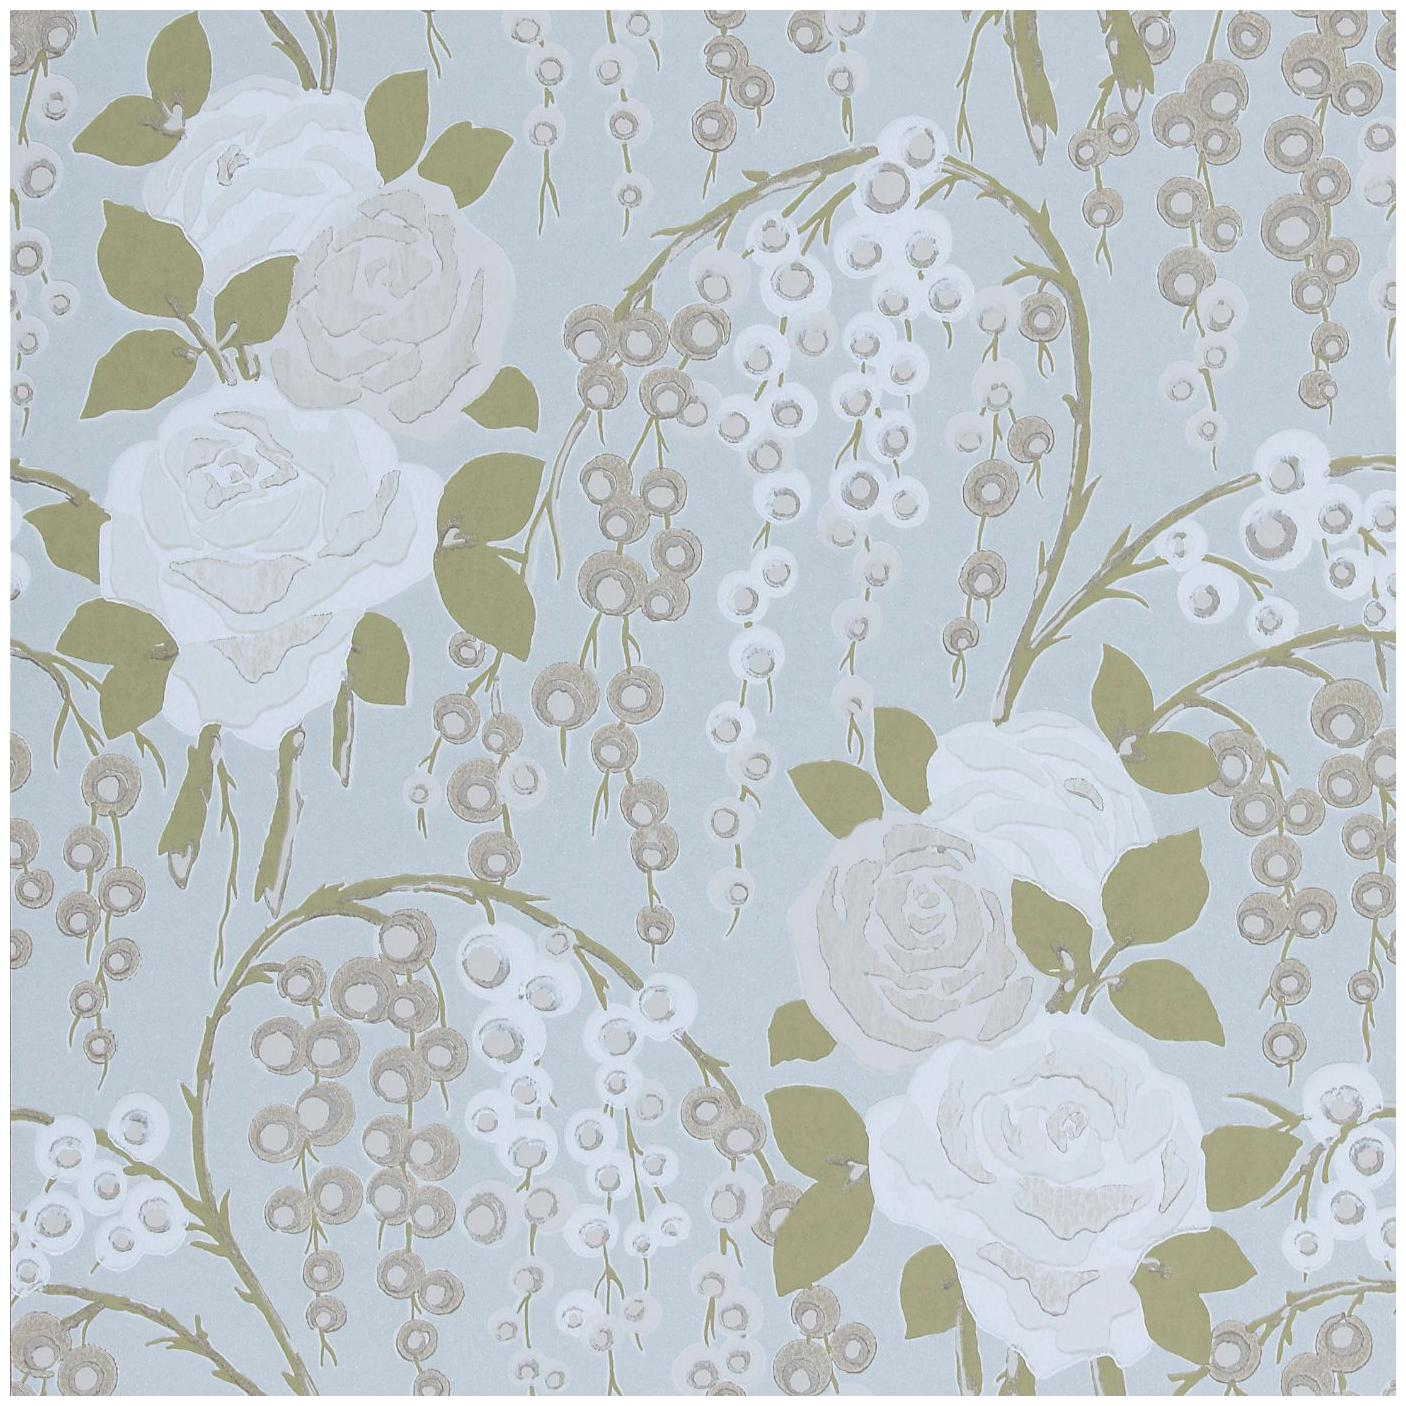 Harlequin Wallpaper Boutique Iola Rose Collection 75026   Thumb 1406x1406